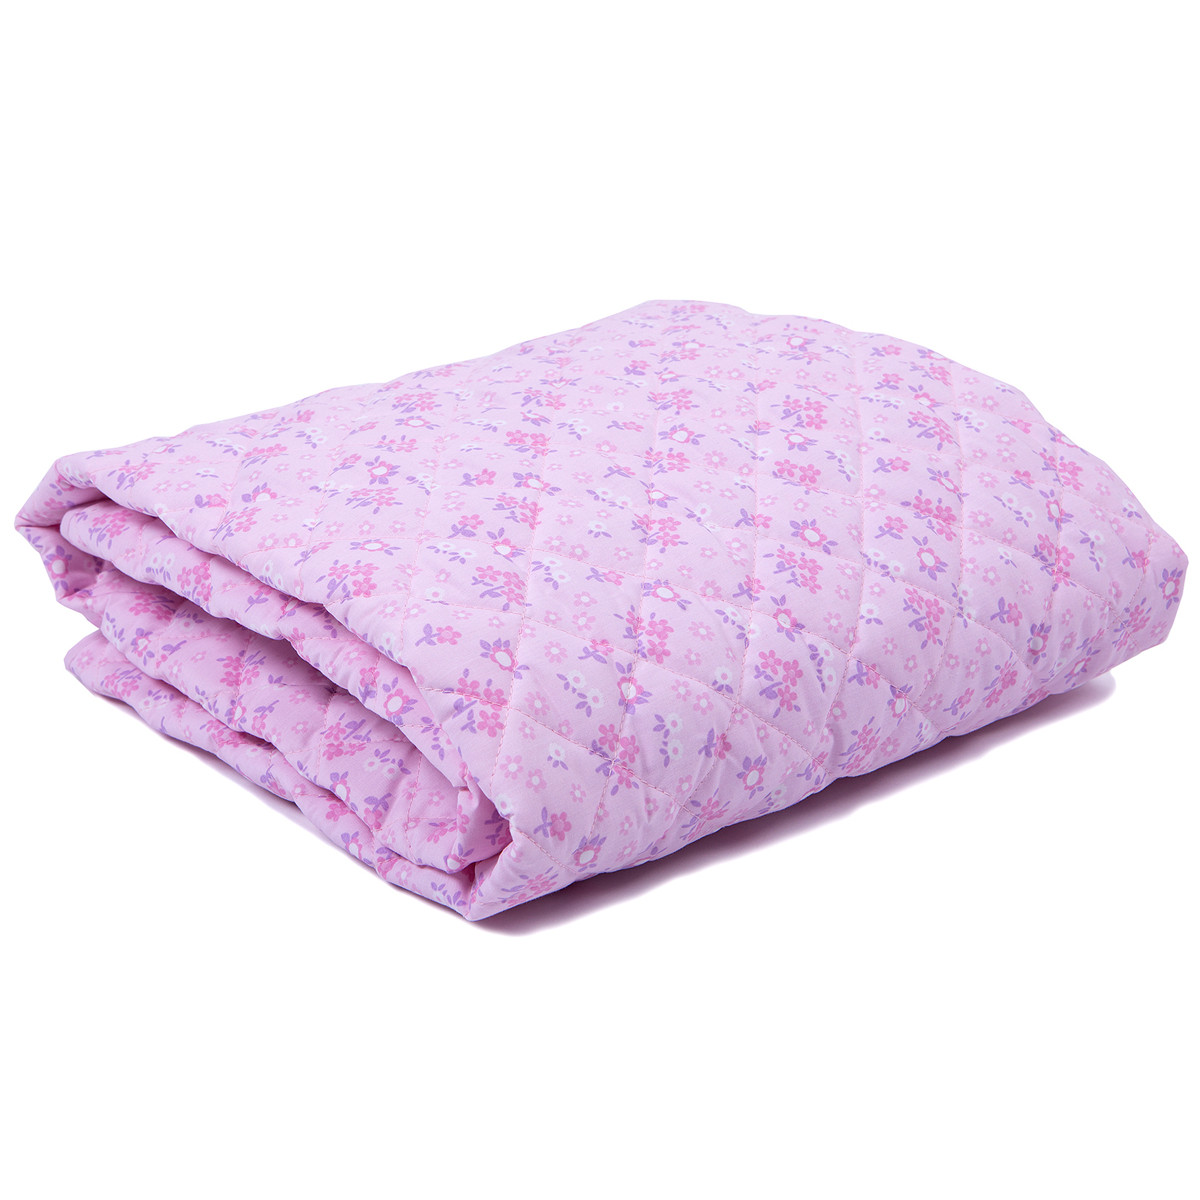 f3df1f33efc Κουβερλί Κούνιας Laura Ashley Sweet 106919 44,00 € spitishop